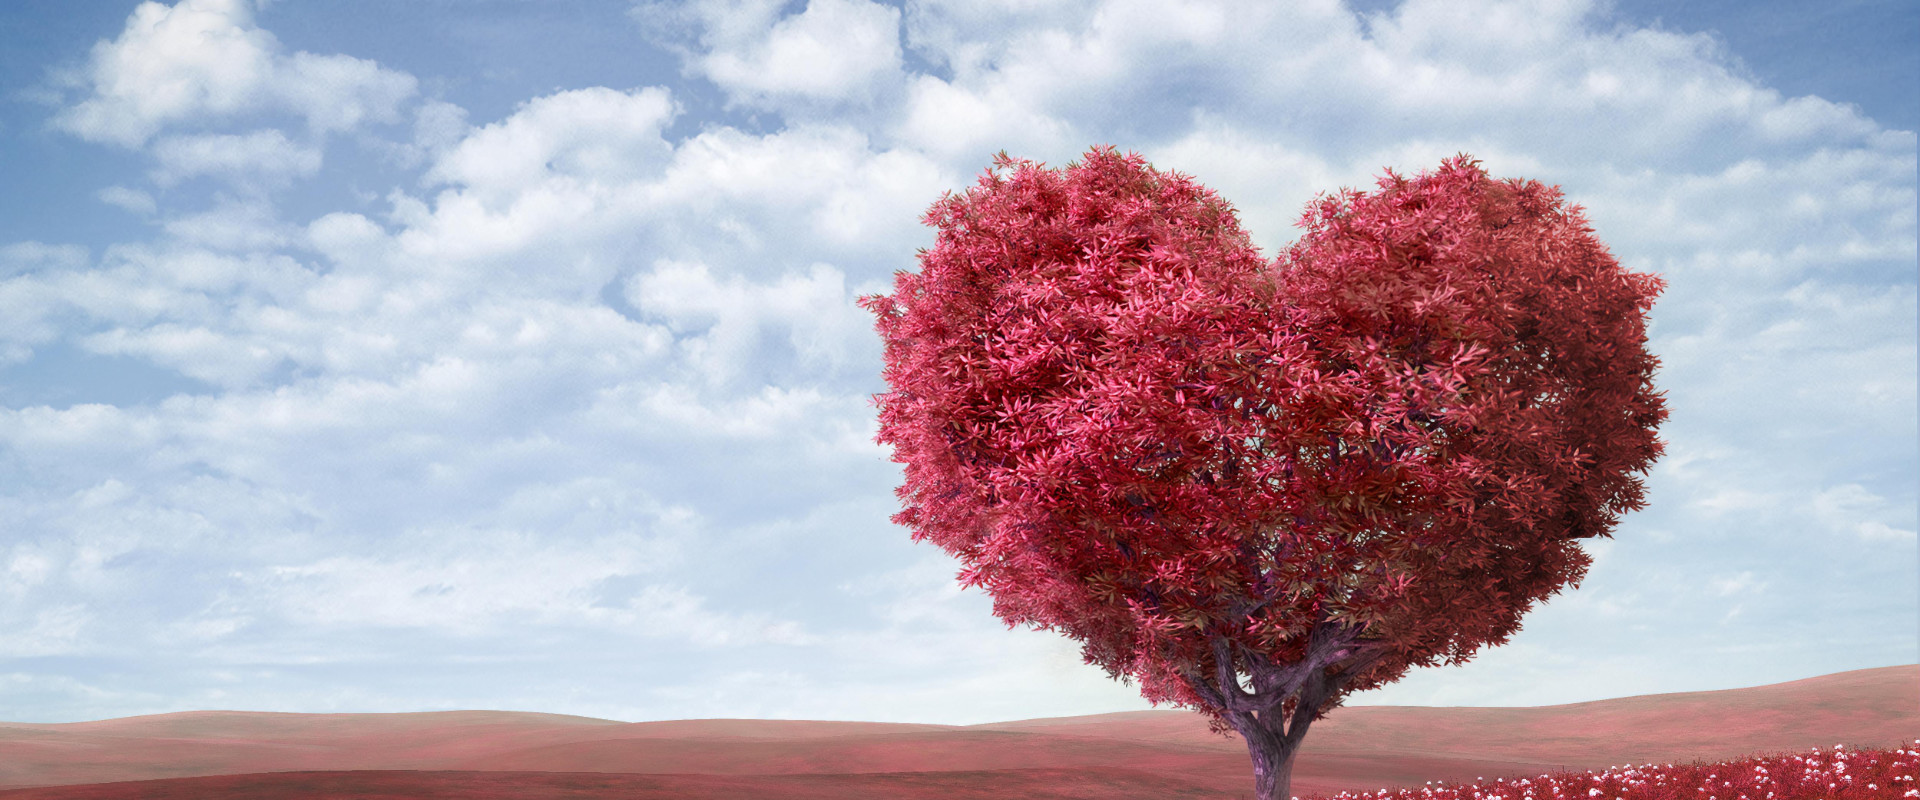 Neighbourhood Watch London - Fenruary Newsletter Header - Heart Shaped Tree